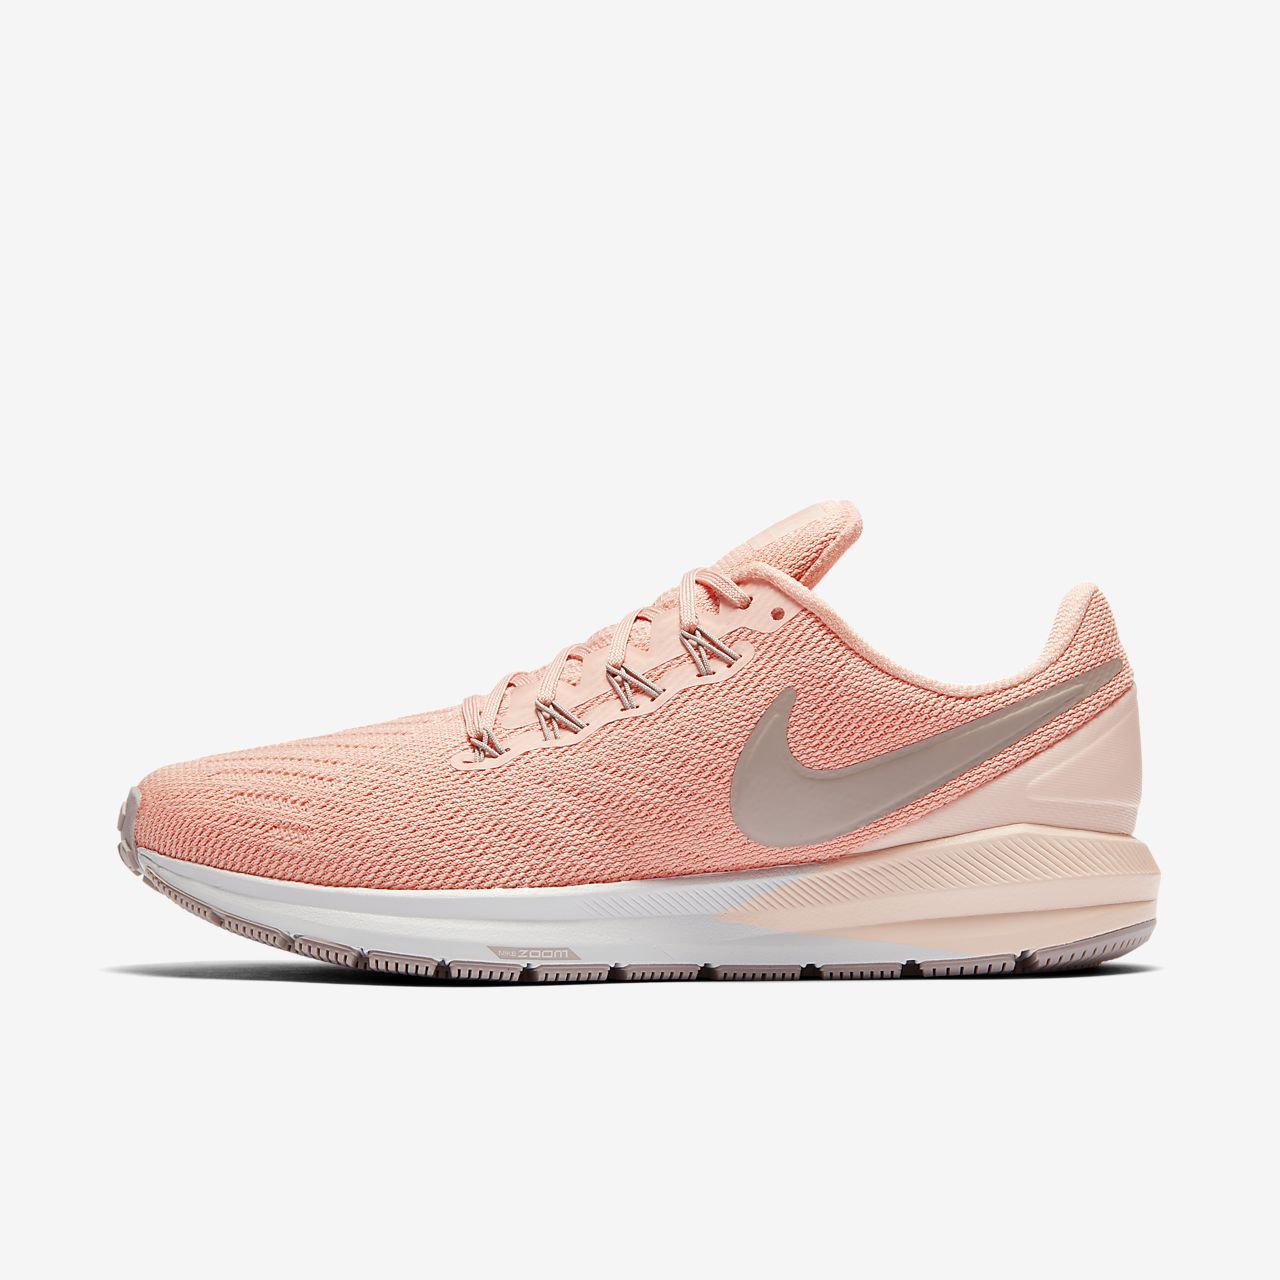 Scarpe da running Nike Air Zoom Strong da donna rosa bianca